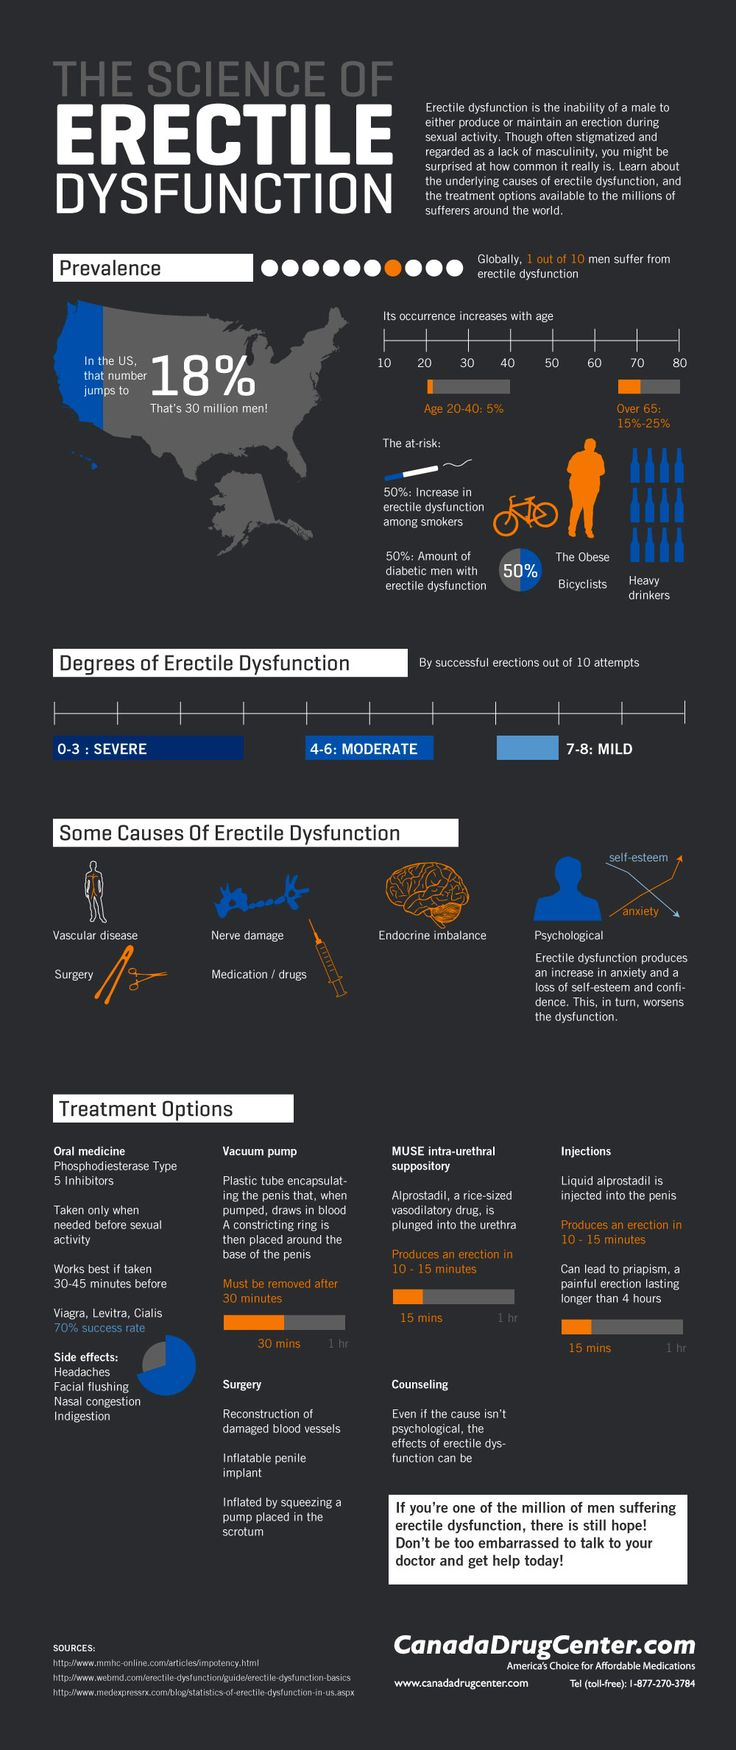 One of the major issues linked to male sexual health is #ED, or #erectile dysfunction. This infographic shows statistics, causes and potential treatments to the condition. Men who are affected with it should seek medical assistance. Although, there are those who thought it's untreatable, truth is it can treated. Plus shifting towards a #healthy way of life can be significantly helpful. Read more about ED at http://ow.ly/yxHsw